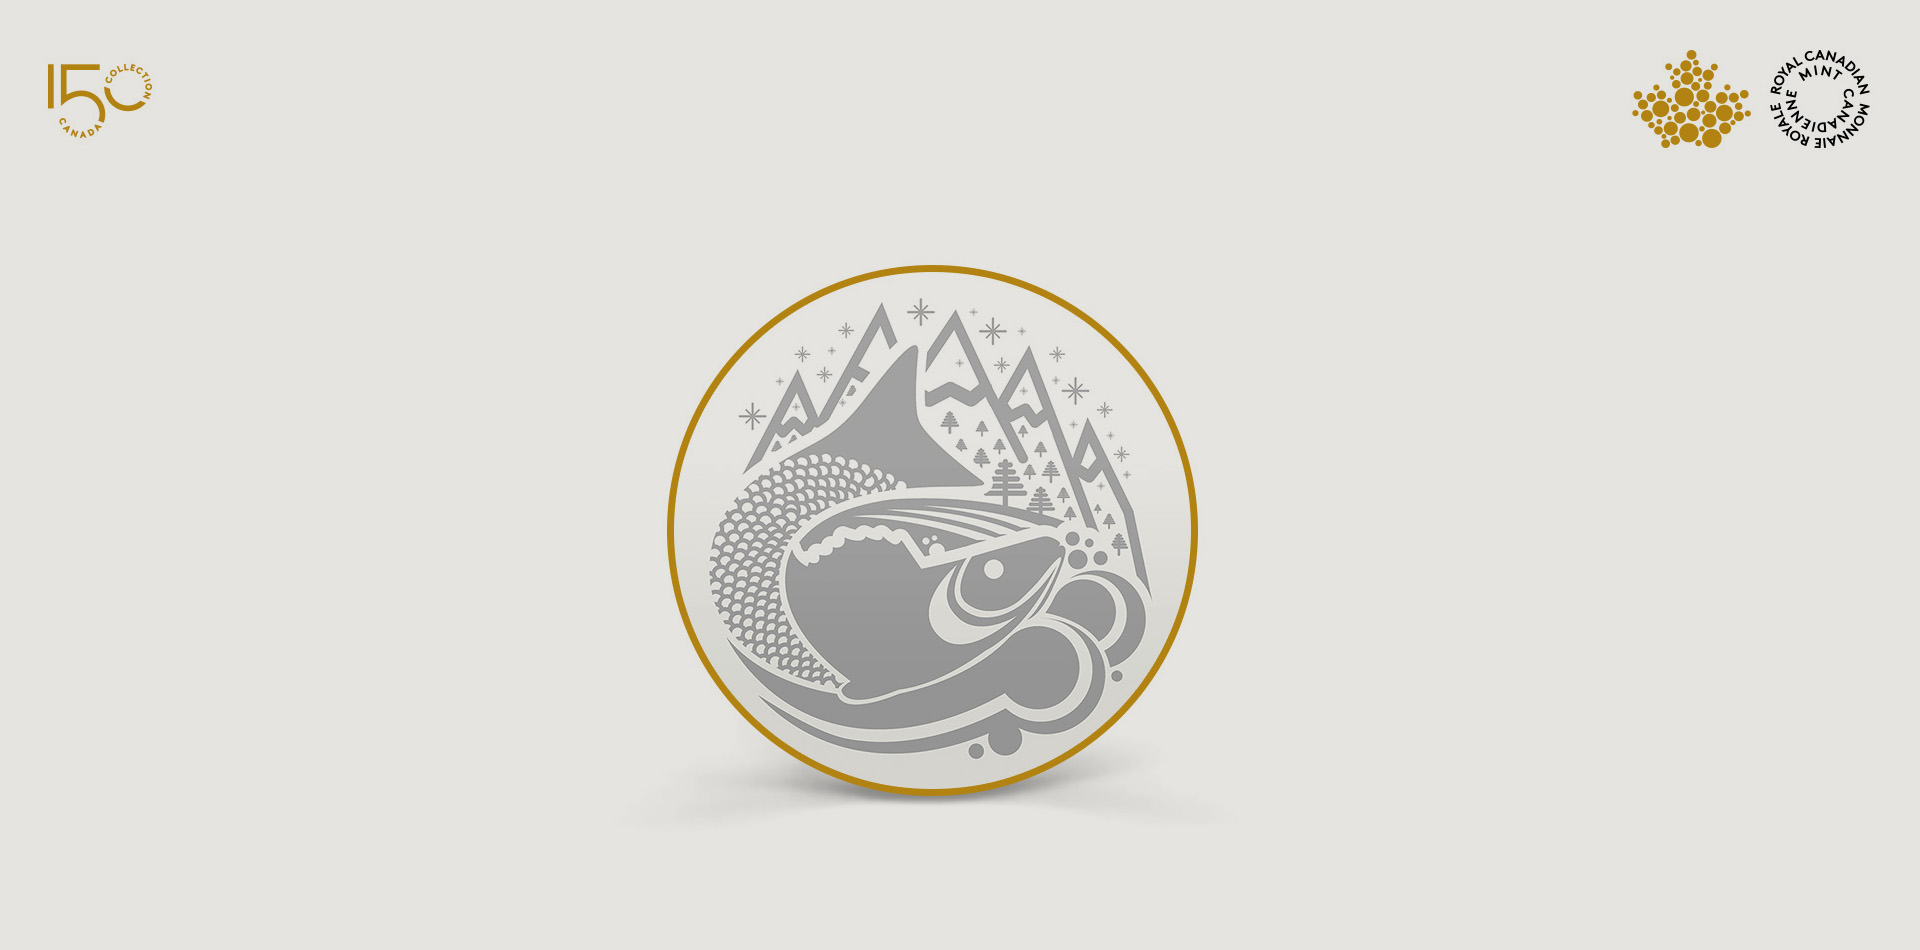 Royal Canadian Mint ( Coin Design, My Canada, My Inspiration )